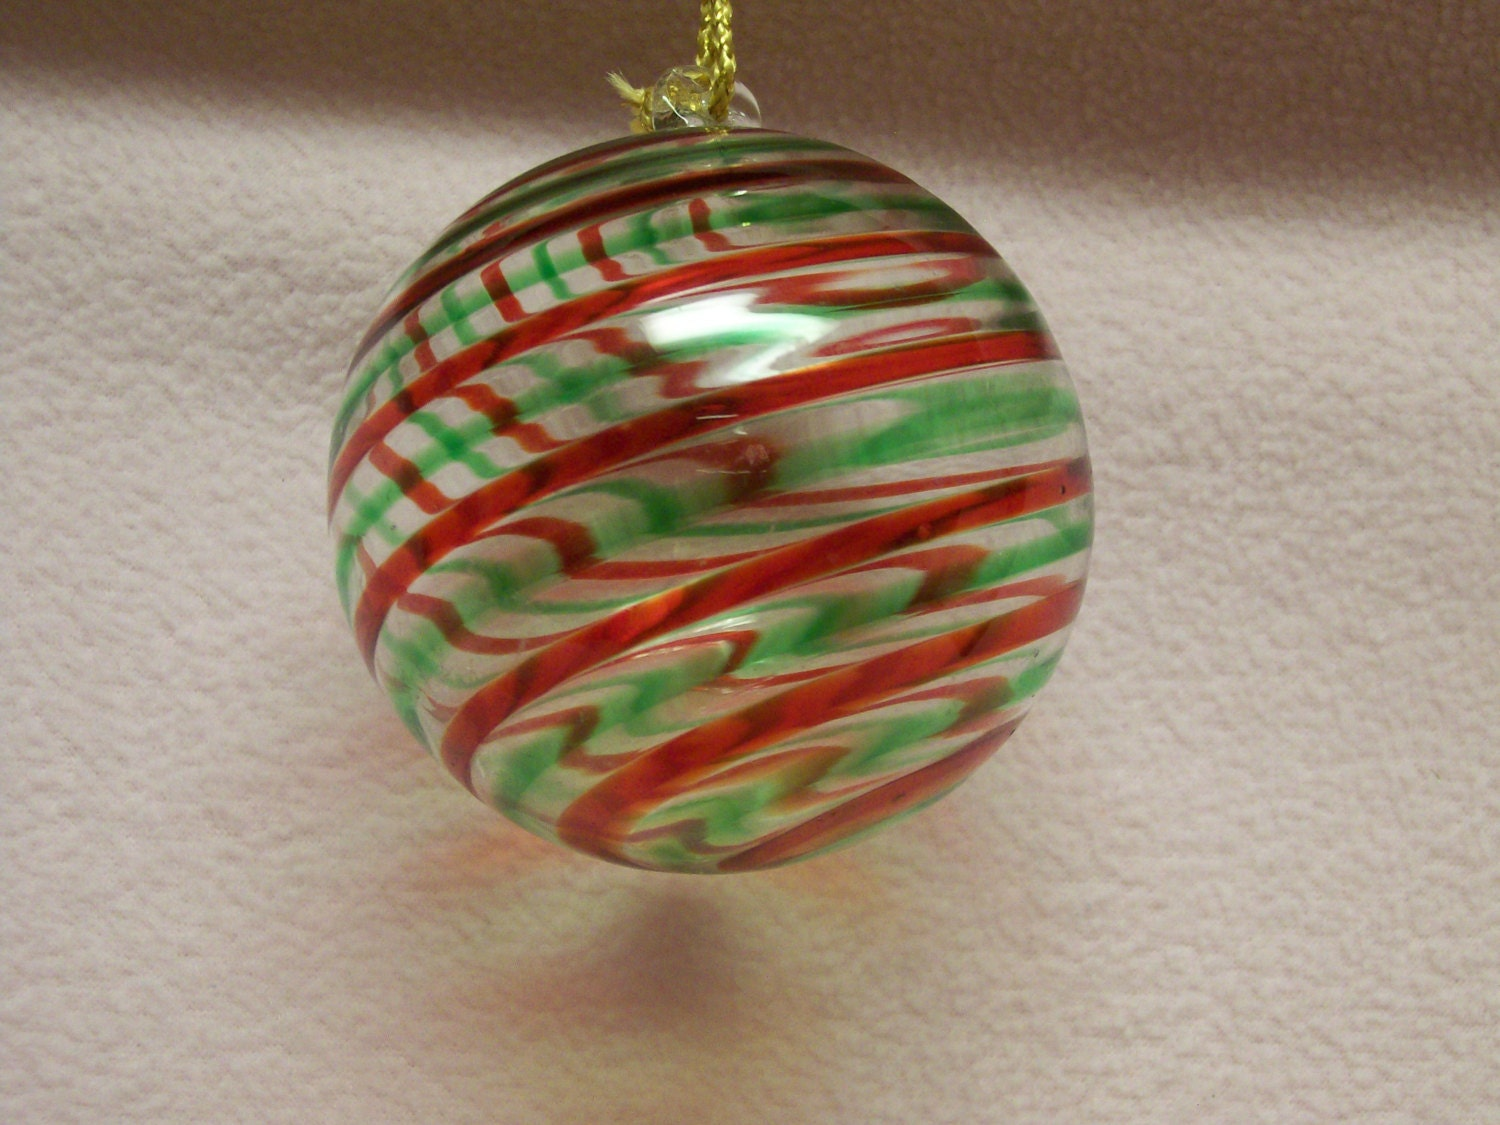 Murano italy ornament glass ball red green stripes - Murano glass ornaments italy ...